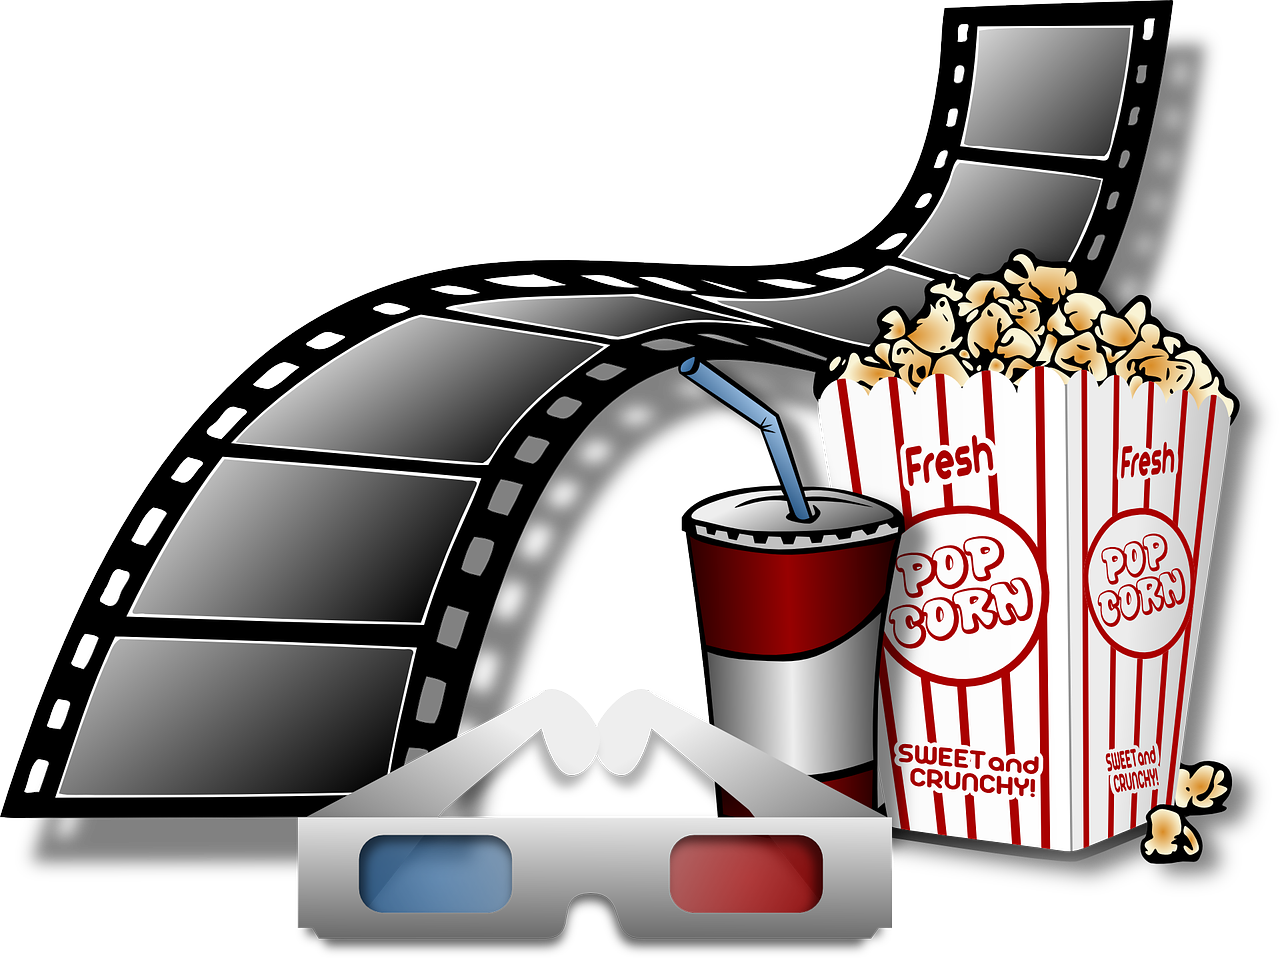 Film Cinema Popcorn Coke Fun Free Image From Needpix Com